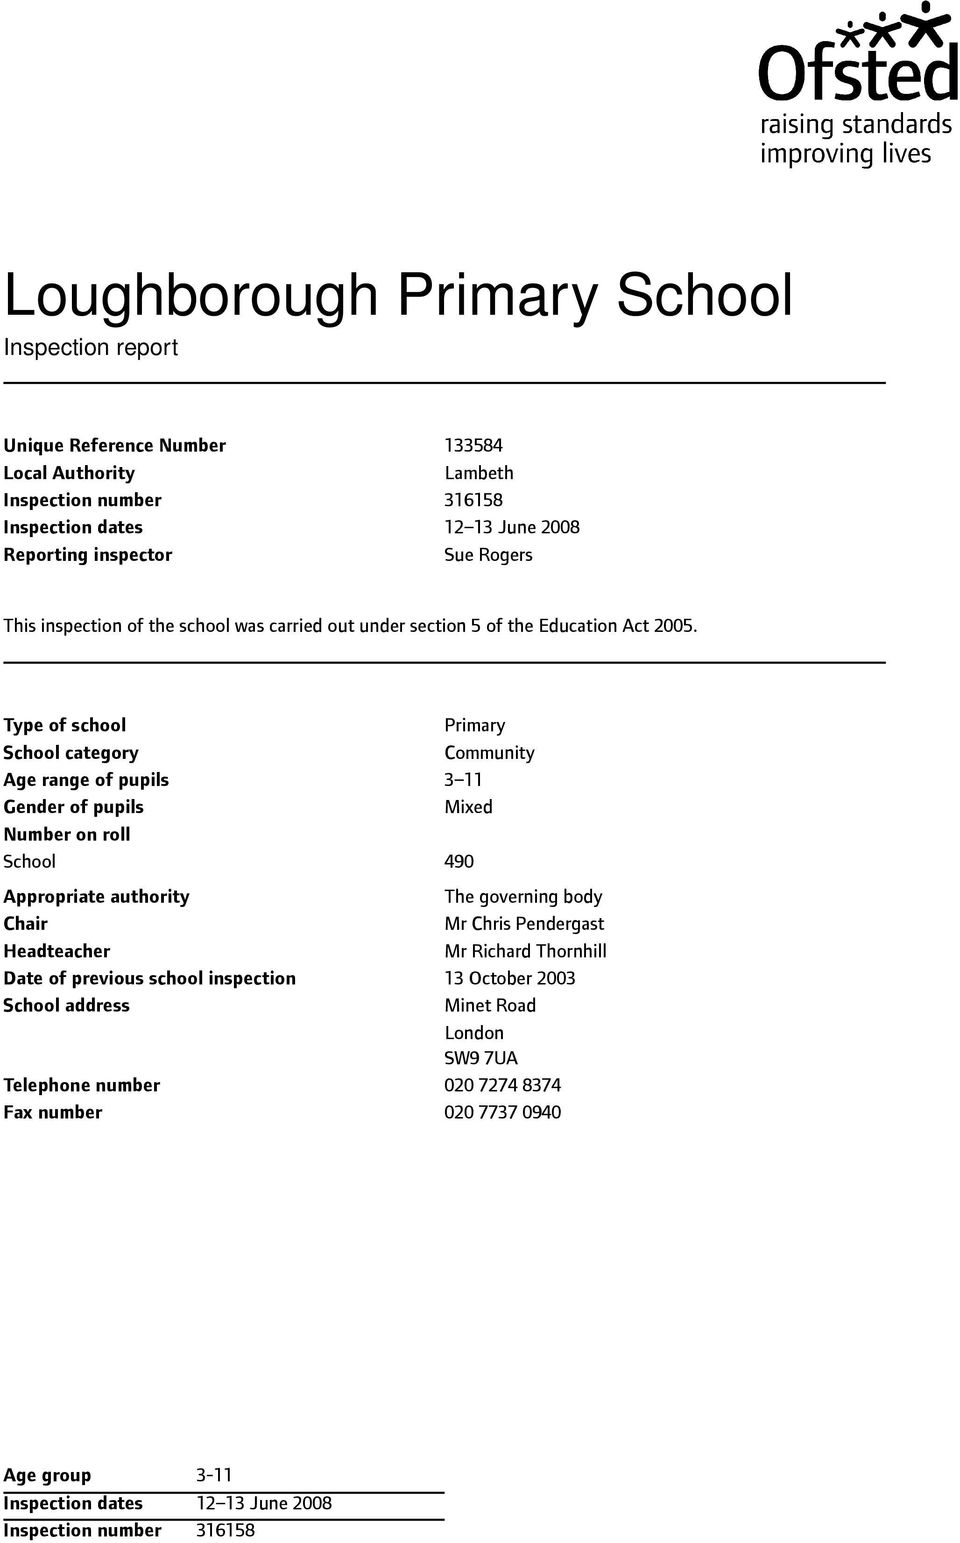 Type of school School category Age range of pupils Gender of pupils Number on roll School Appropriate authority Chair Headteacher Date of previous school inspection School